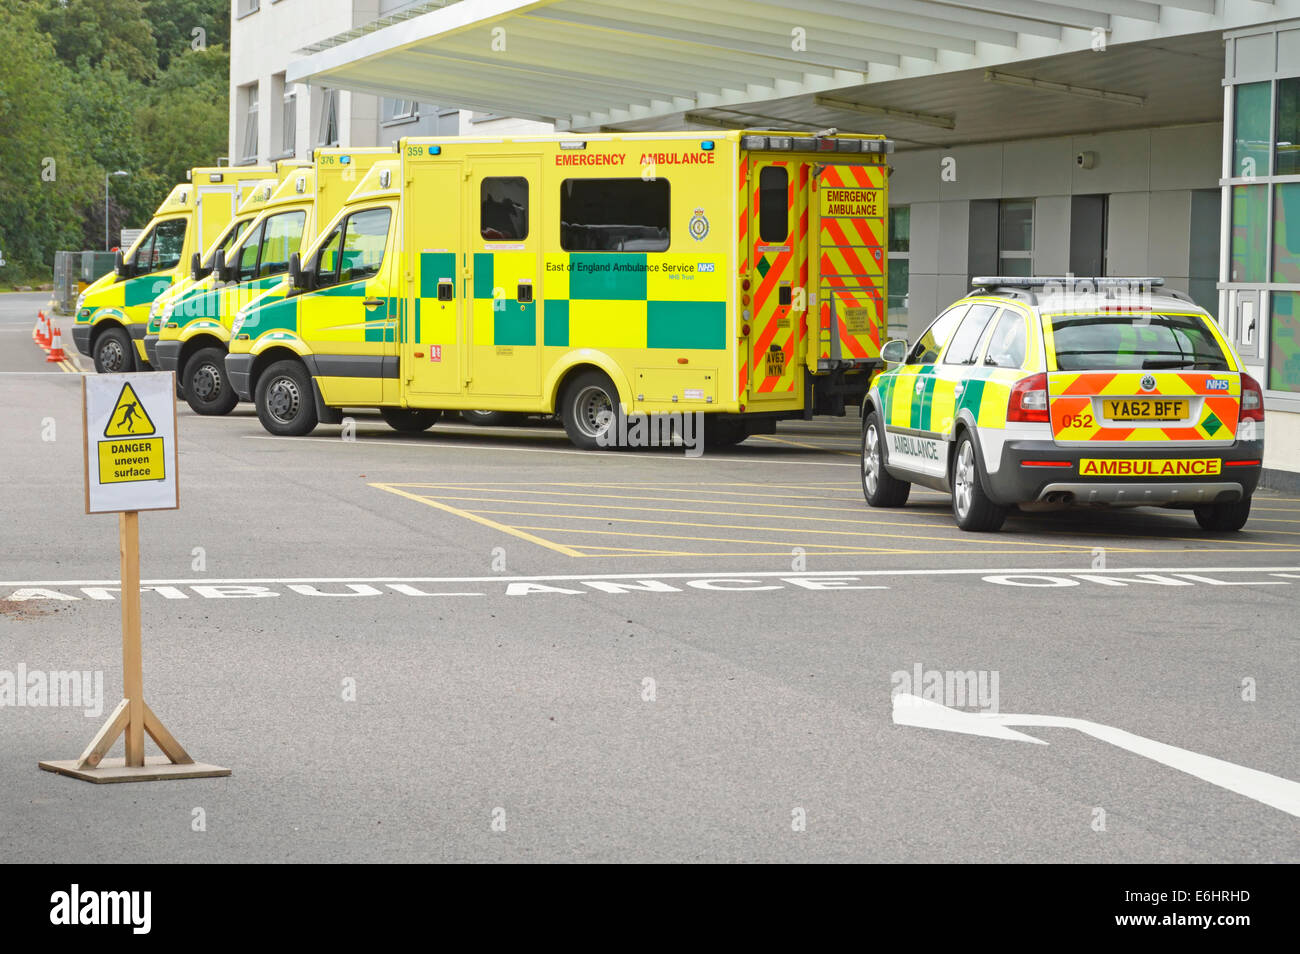 Ambulances parked outside Broomfield Hospital Accident and Emergency department - Stock Image